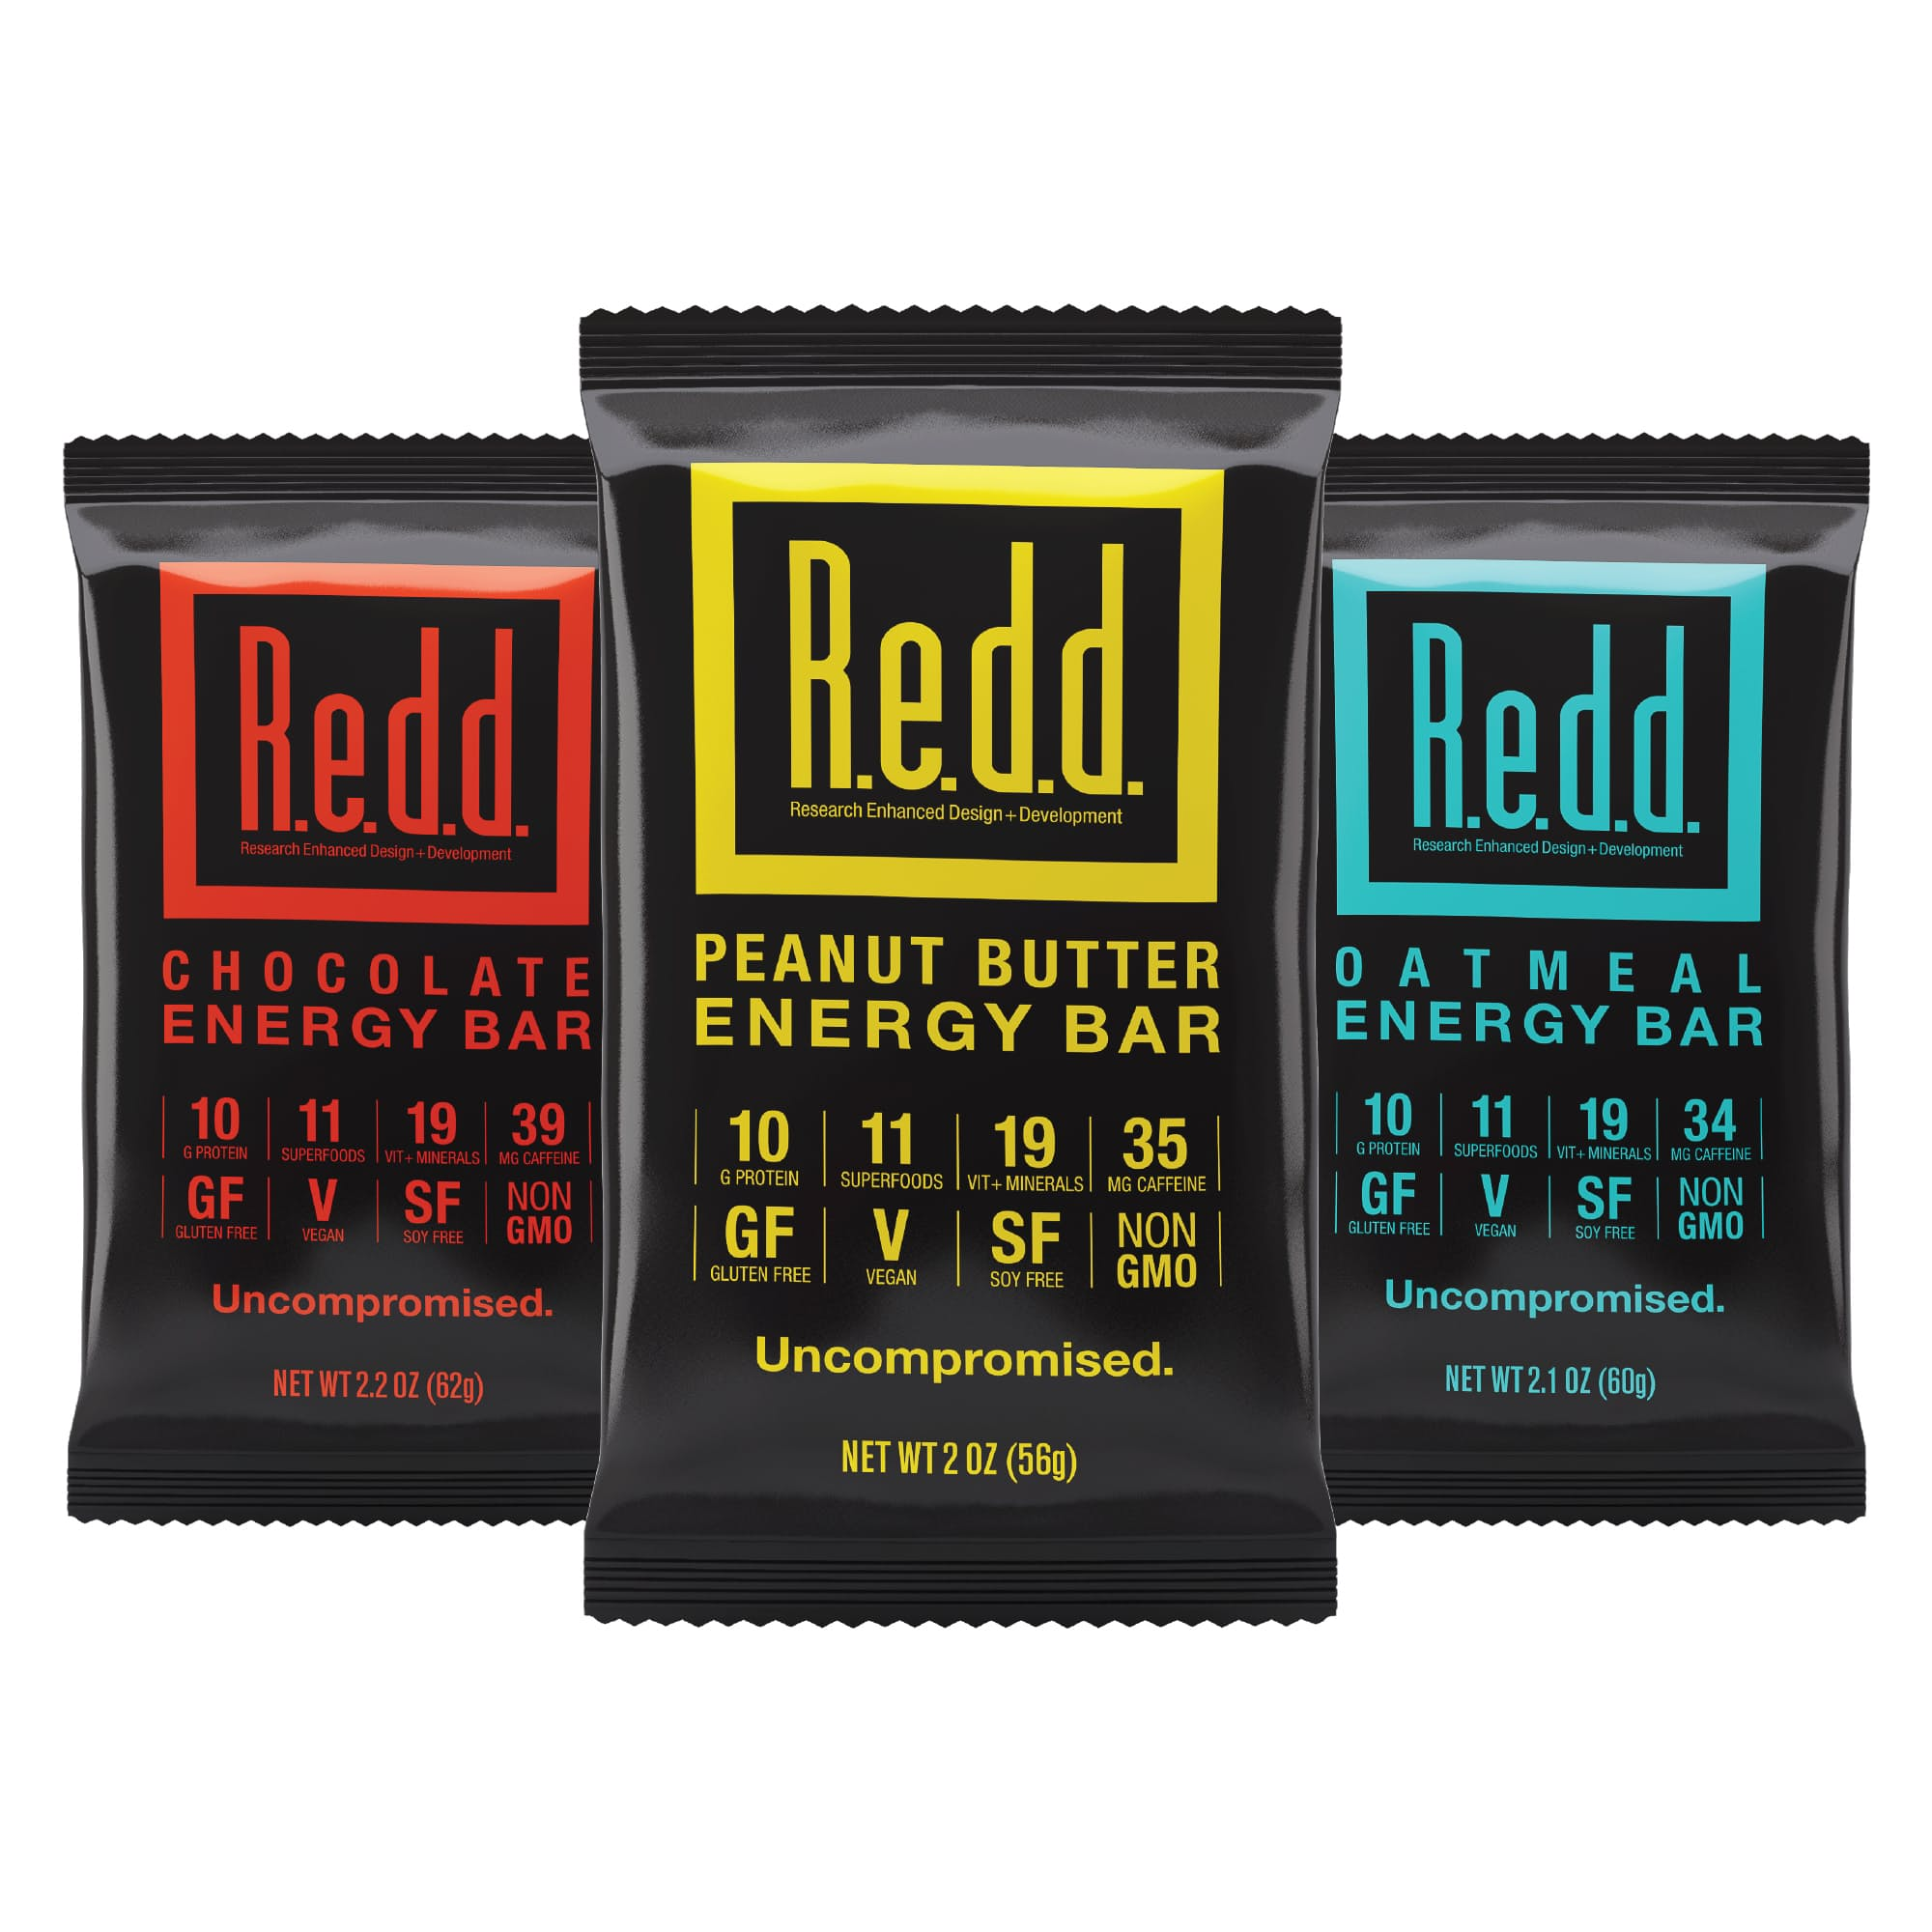 K7o3wvhevg r e d d chocolate oatmeal and peanut butter variety pack 18 bar pack 0 original